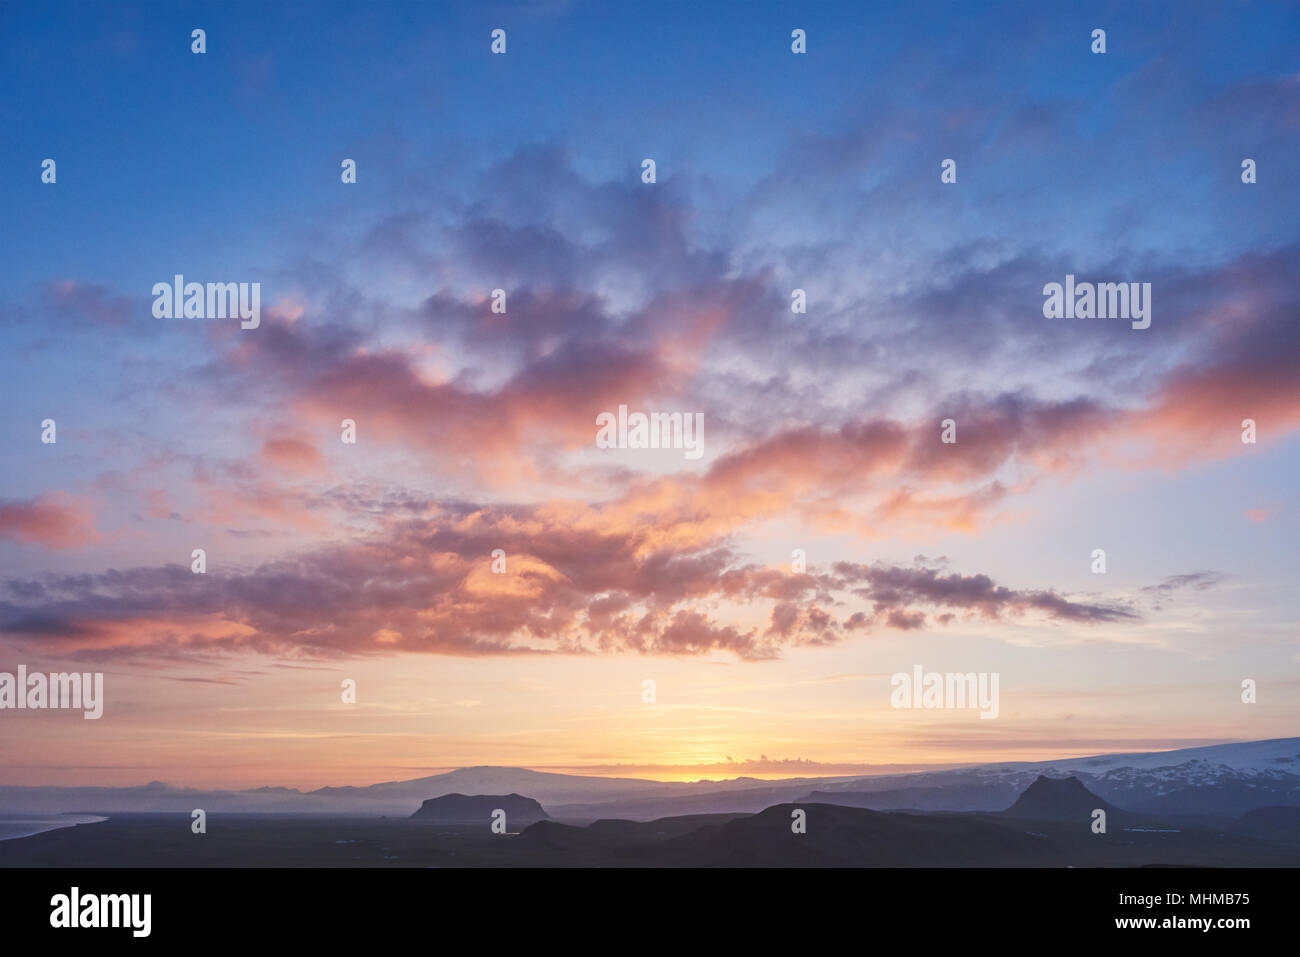 Majestic mountains landscape under morning sky with clouds Stock Photo